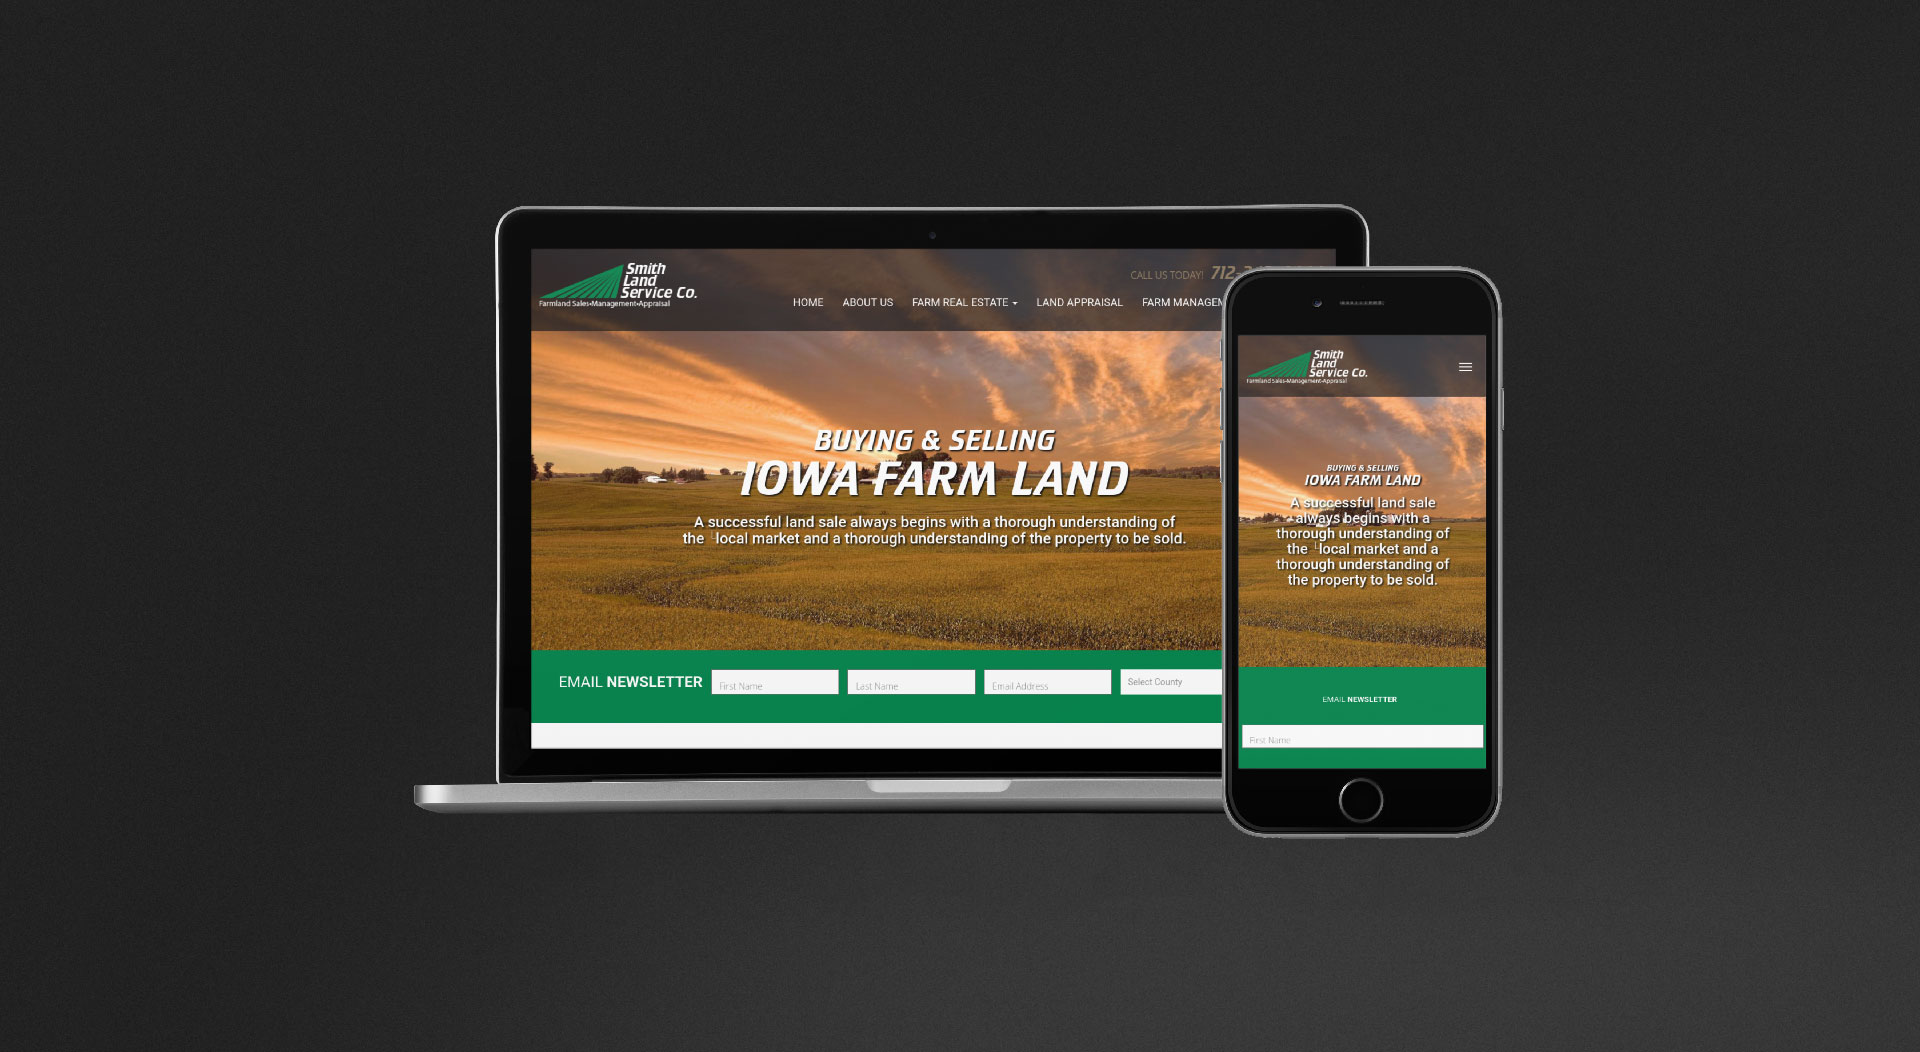 Smith Land Service Responsive Web Design